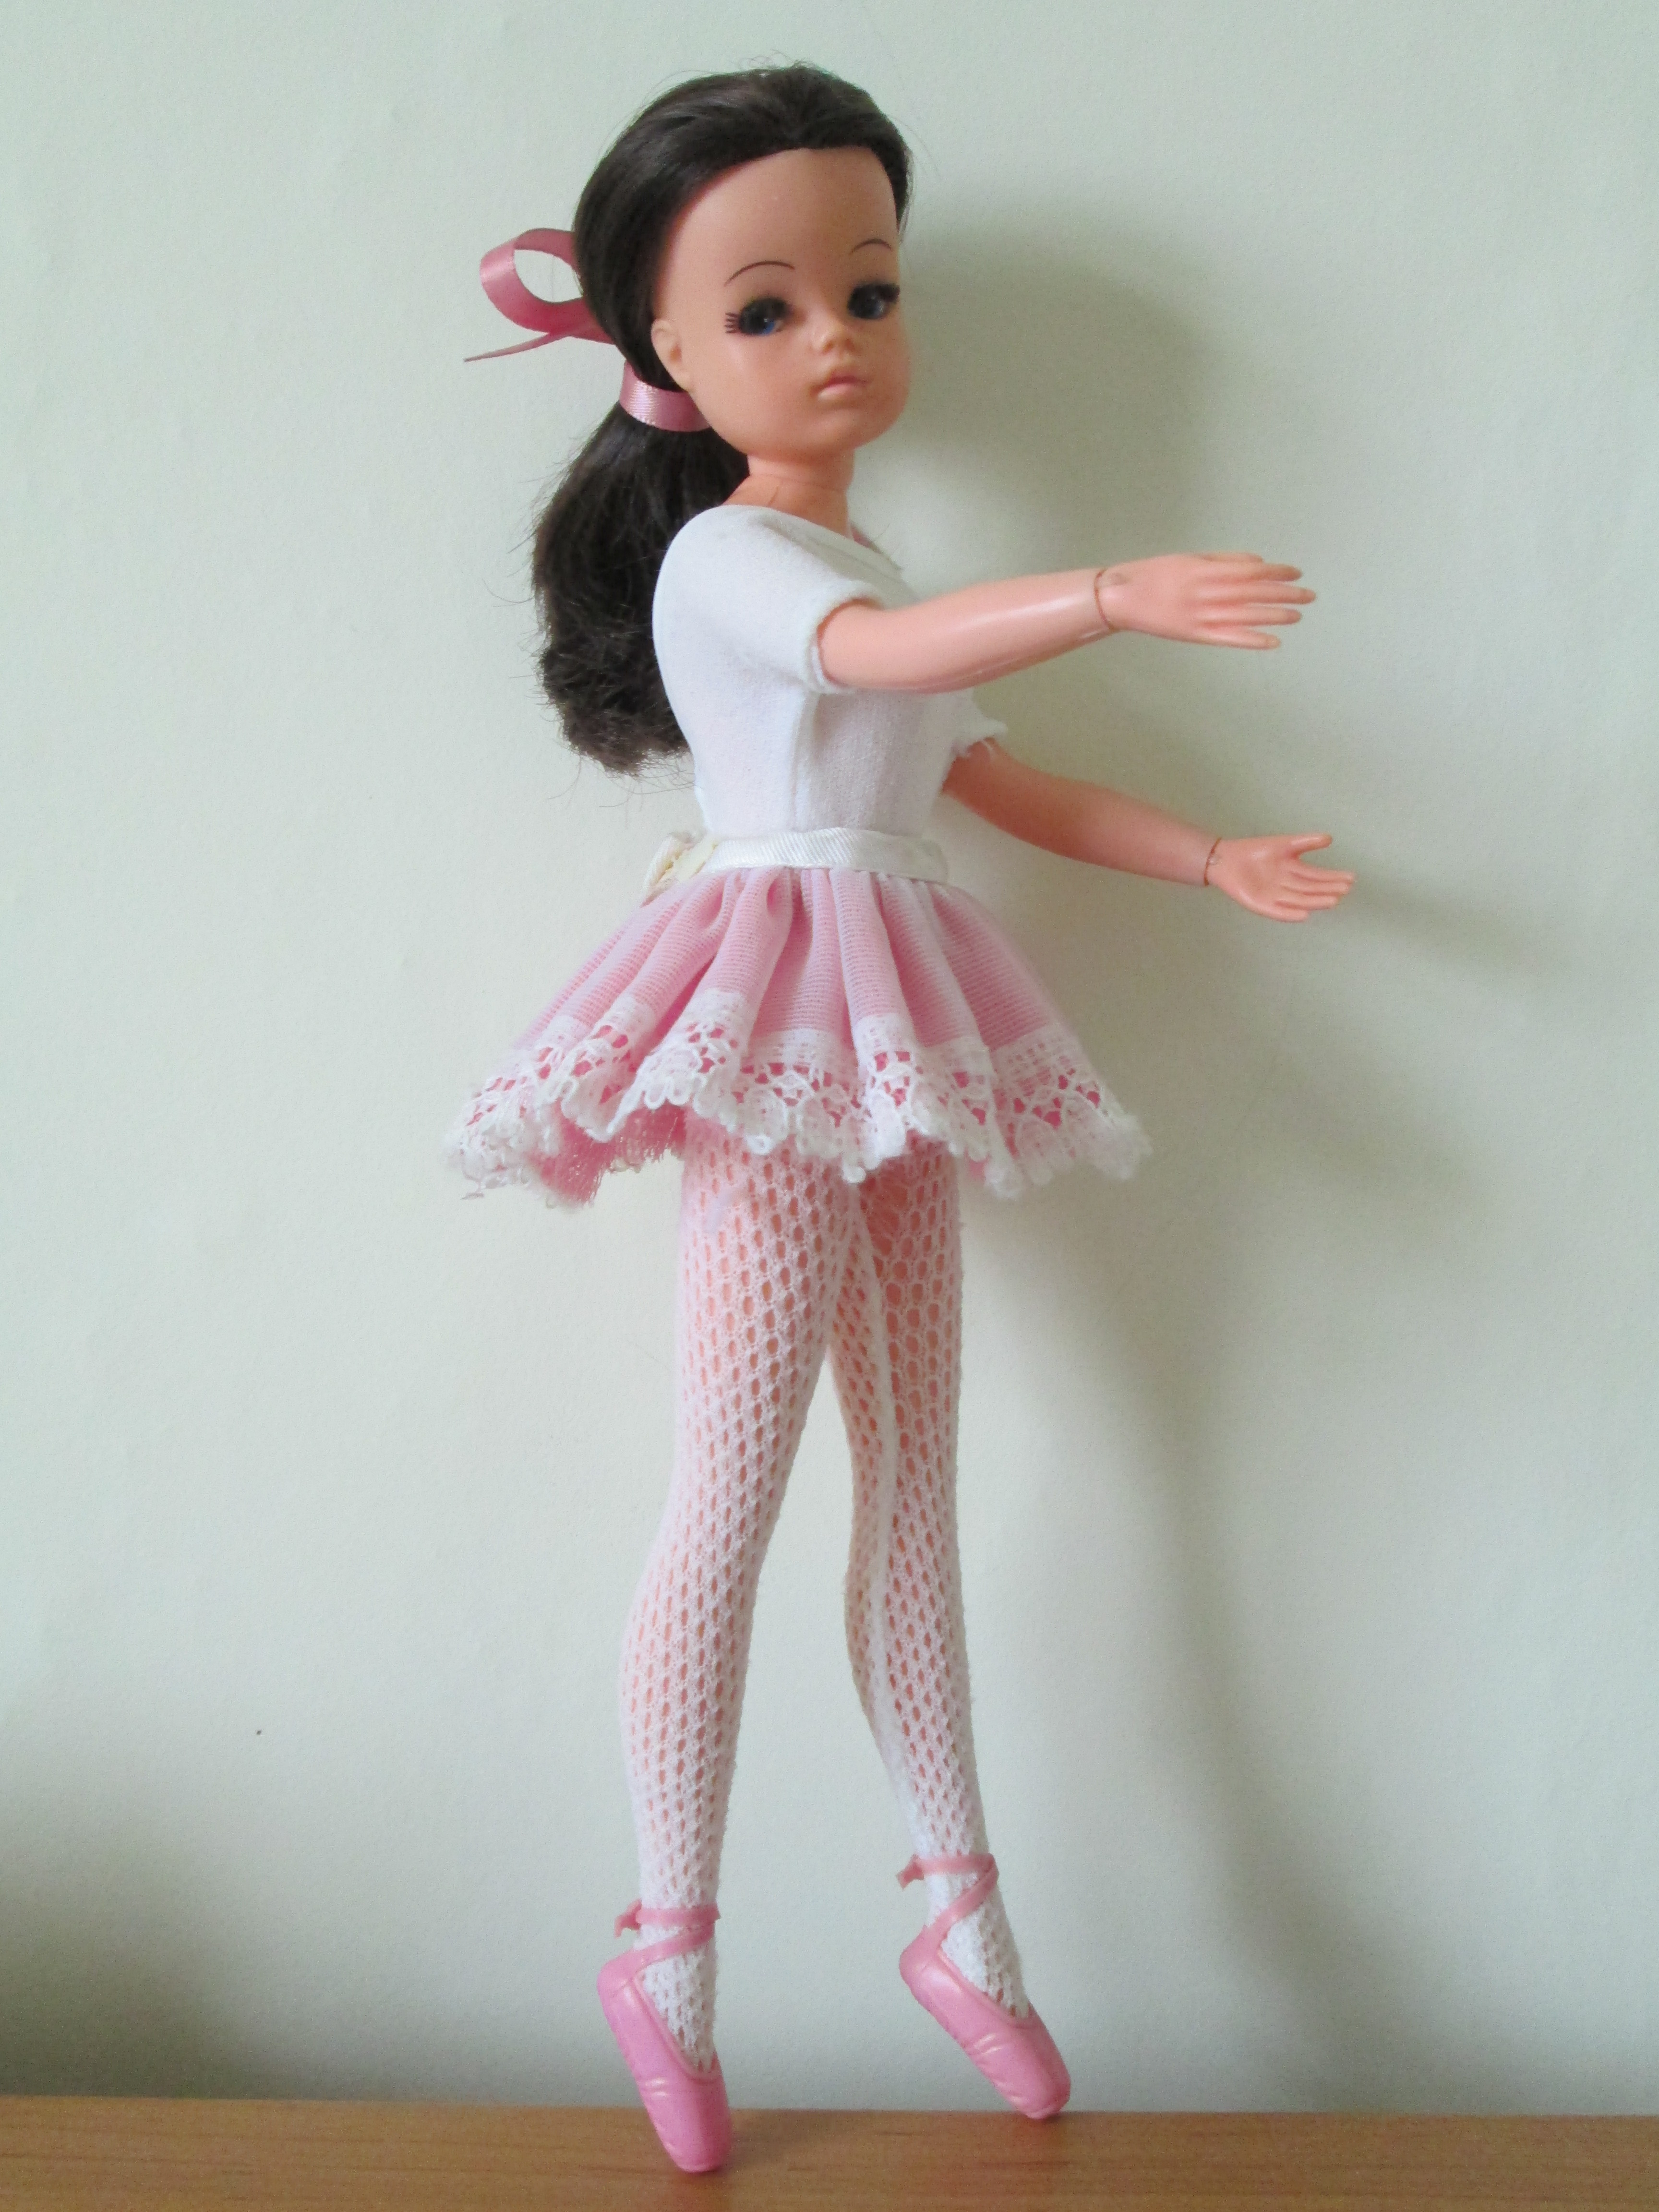 Ballerina Sindy Flickr Photo Sharing